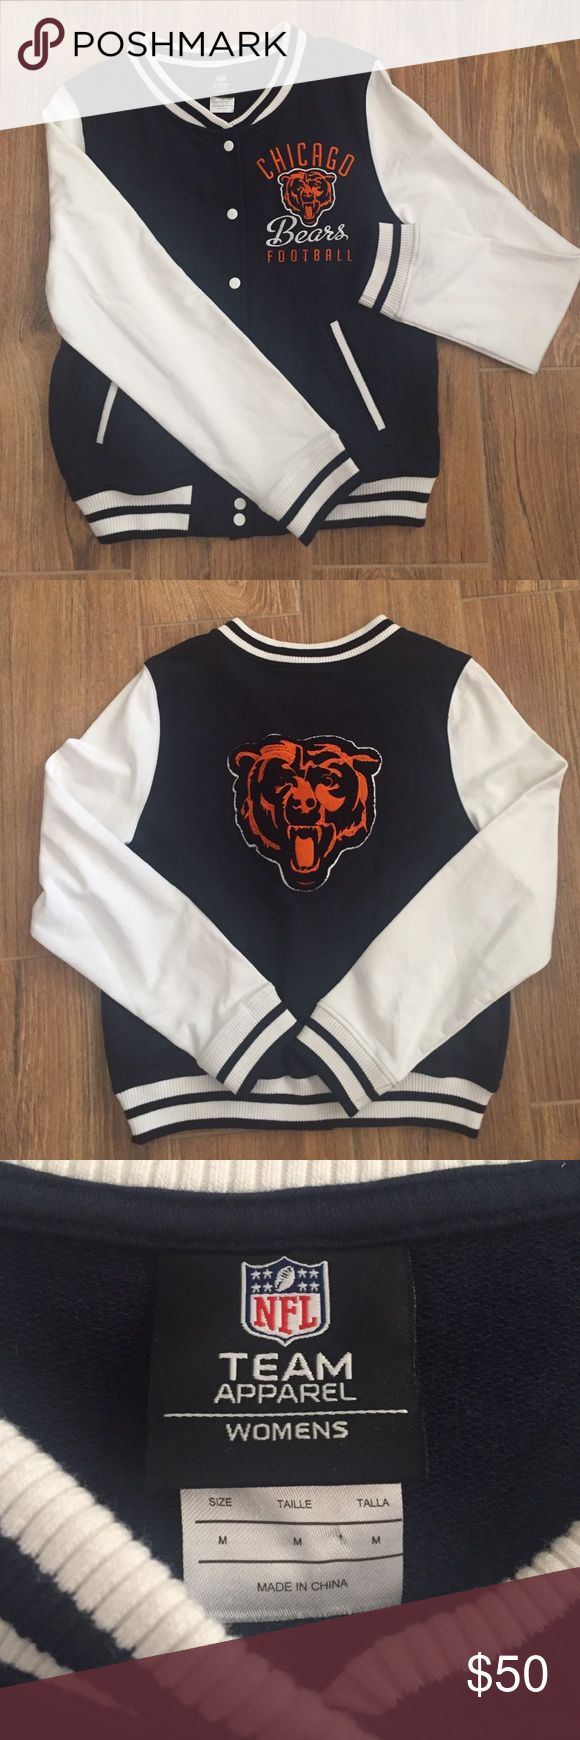 NFL Bears letterman jacket Authentic NFL Team Apparel Women's, Chicago Bears letterman jacket, size:medium. Brand new. Never worn. No tags. Bought it in Chicago! Football season is here!! NFL Team Apparel  Jackets & Coats